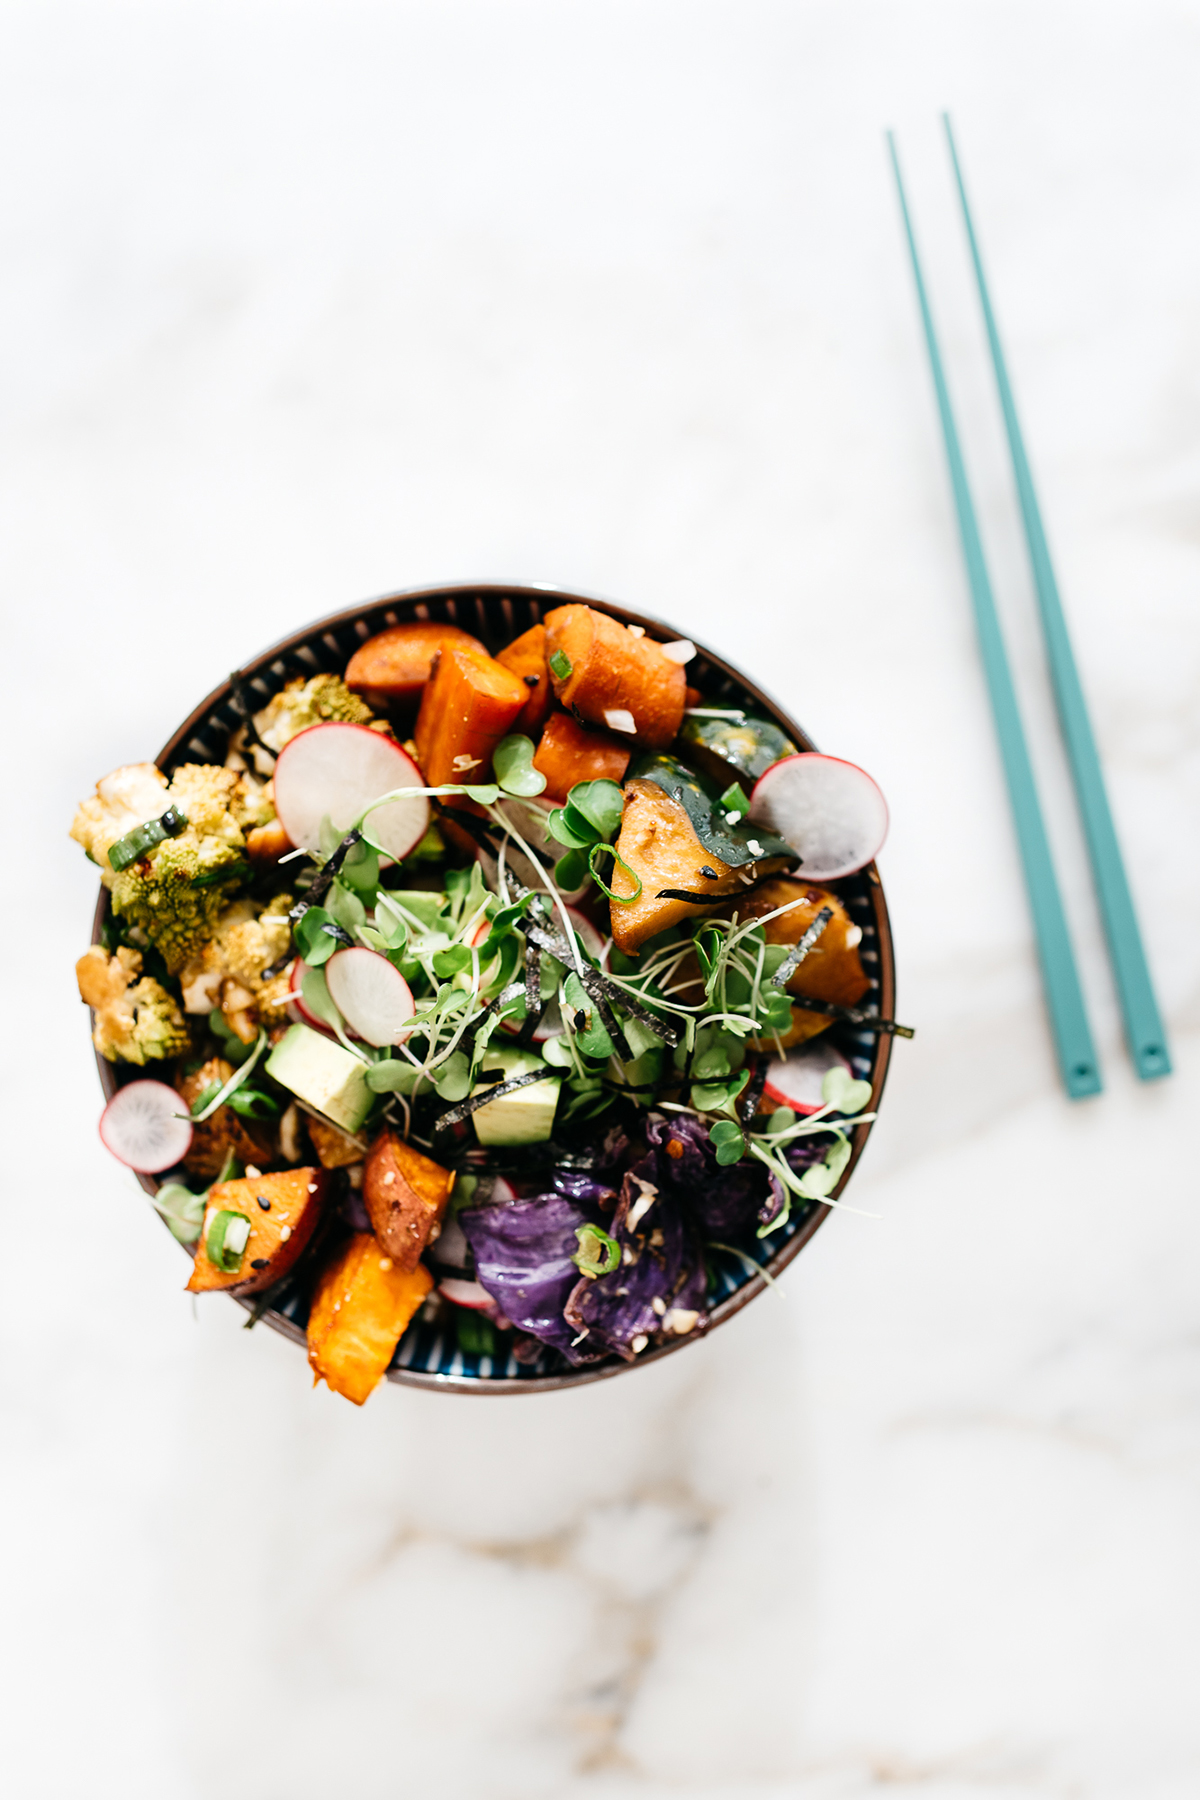 Roasted Winter Vegetable Bowl